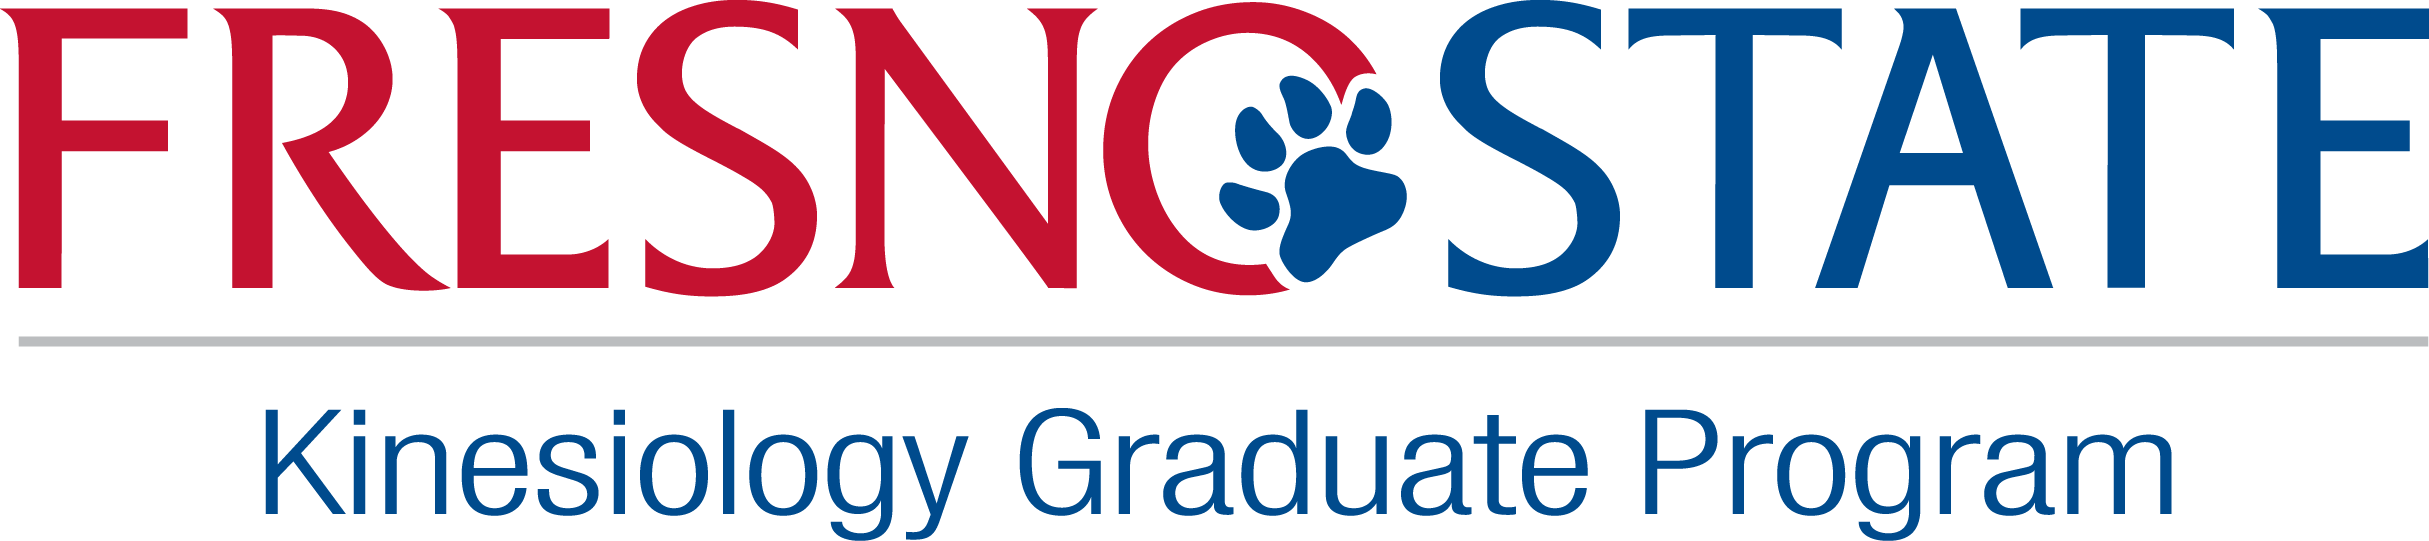 Kinesiology Grad Program logo